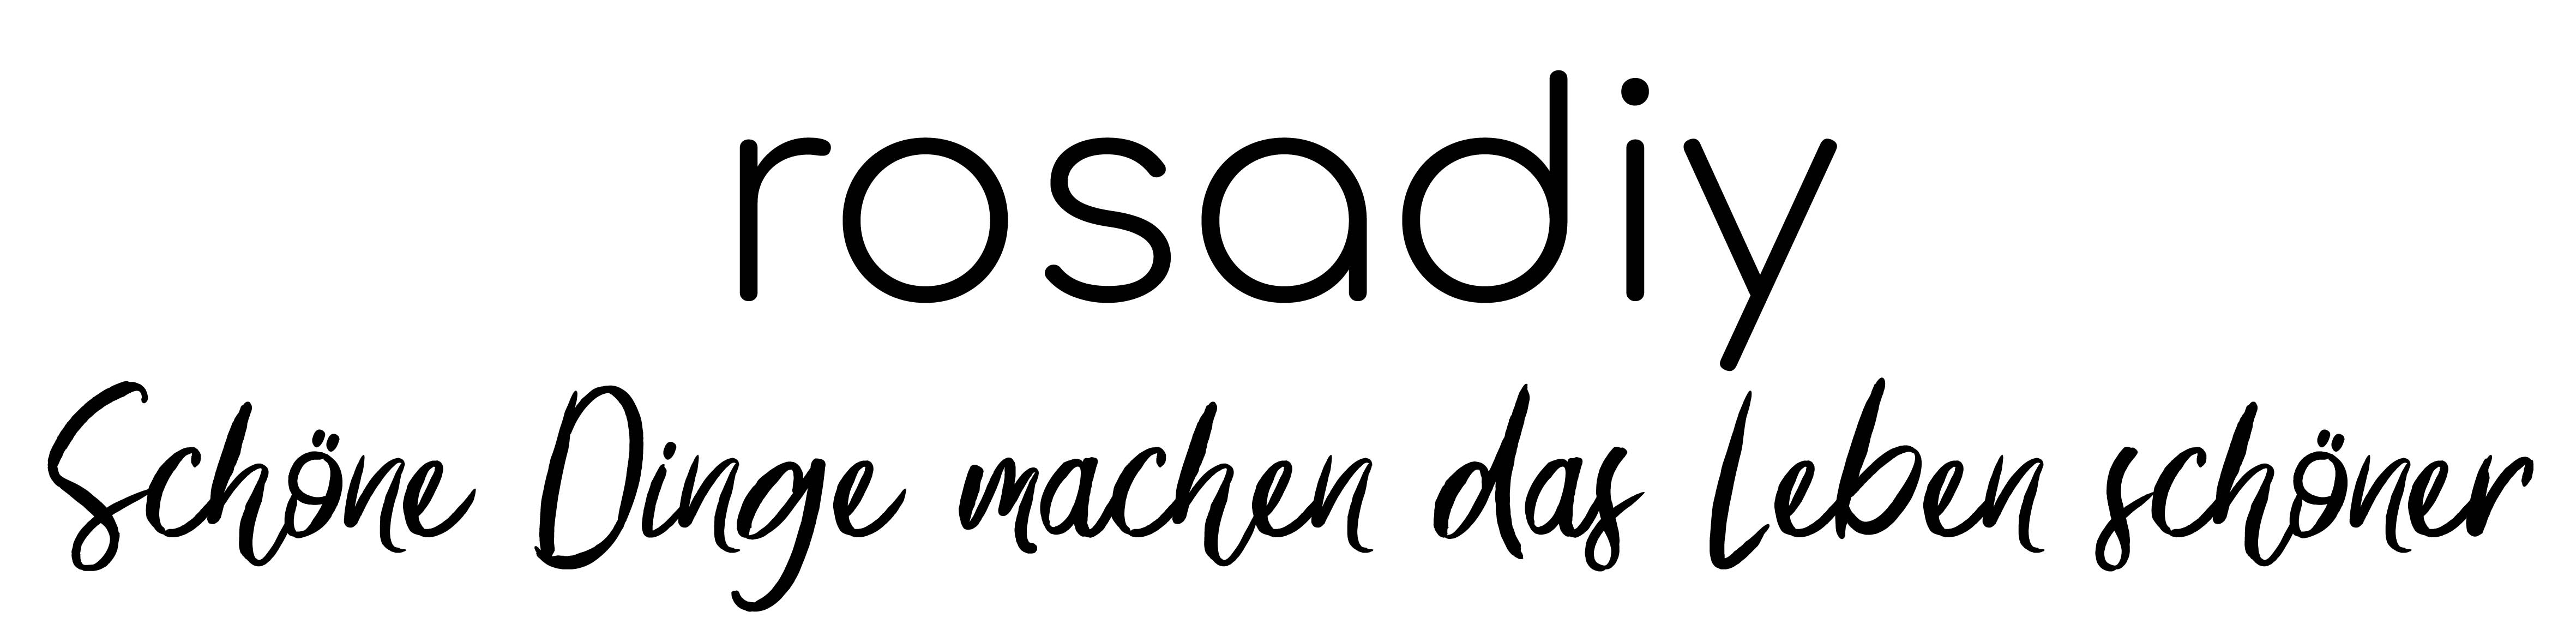 rosaDIY – Schöne Dinge machen das Leben schöner!